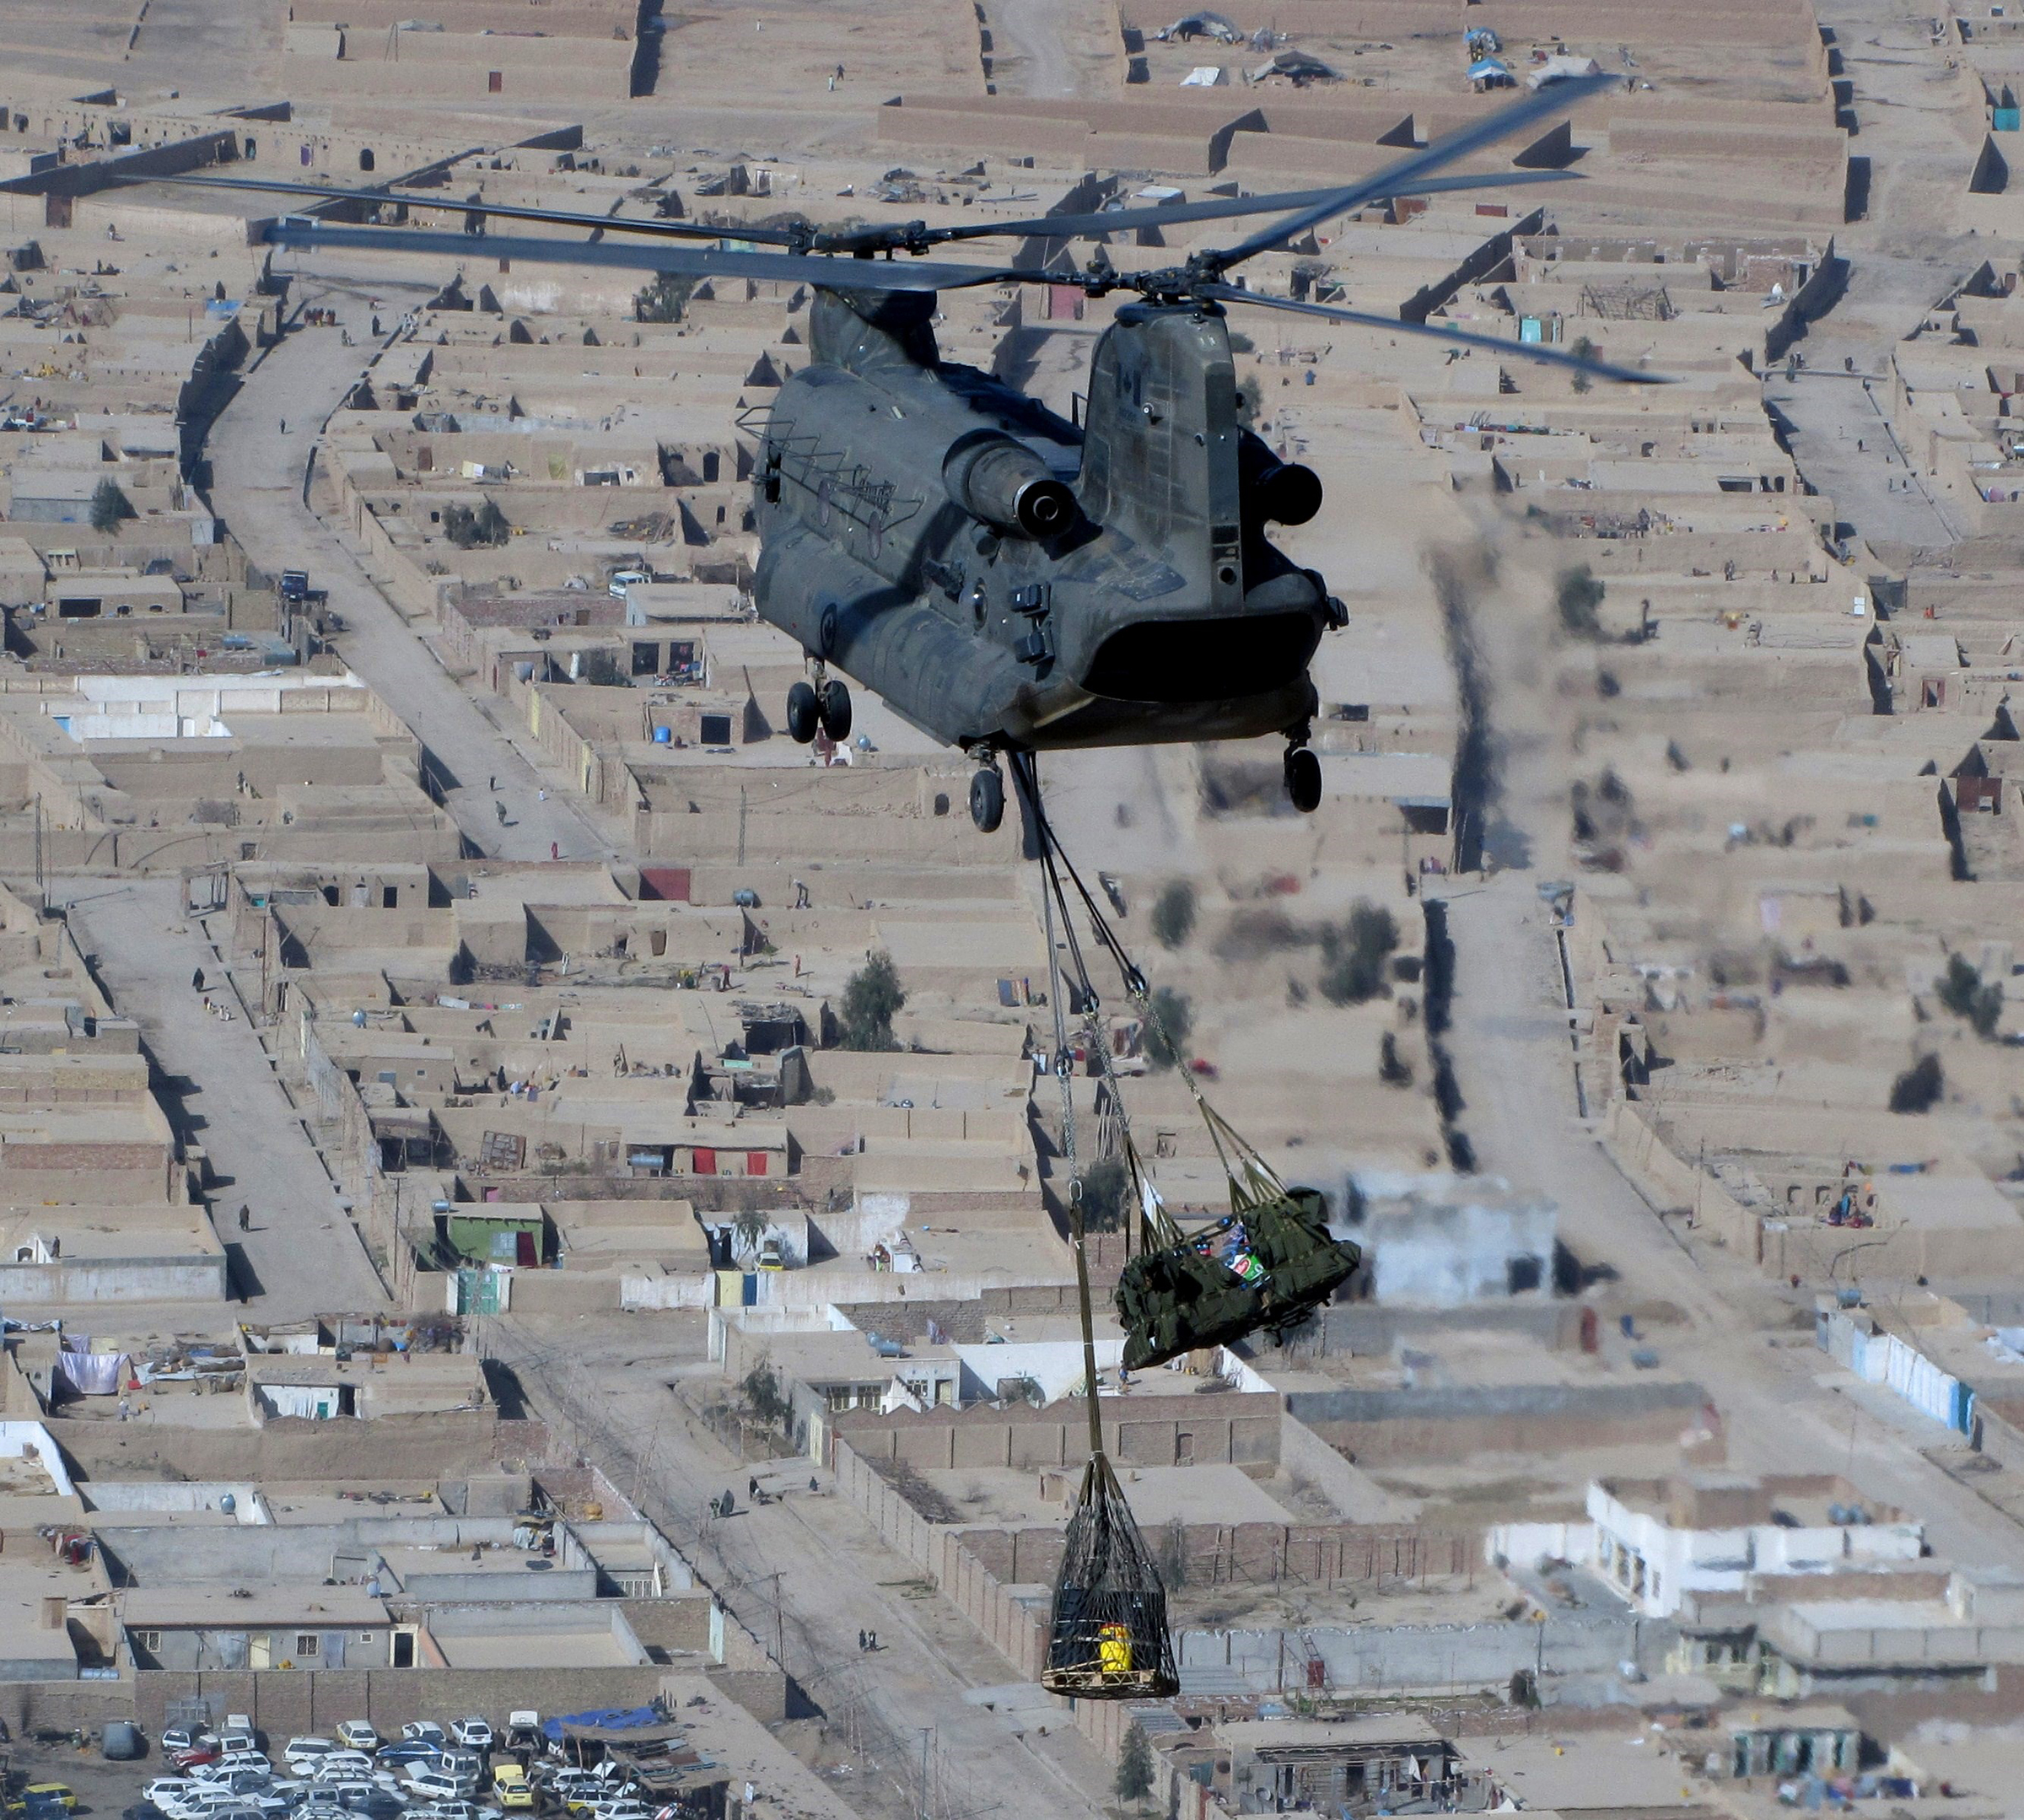 A D-model Chinook helicopter flies over Kandahar City with a slung load. The Chinook slung load capability was used to re-supply forward operating bases. PHOTO: Master Corporal Craig Wiggins, ISX2010-0031